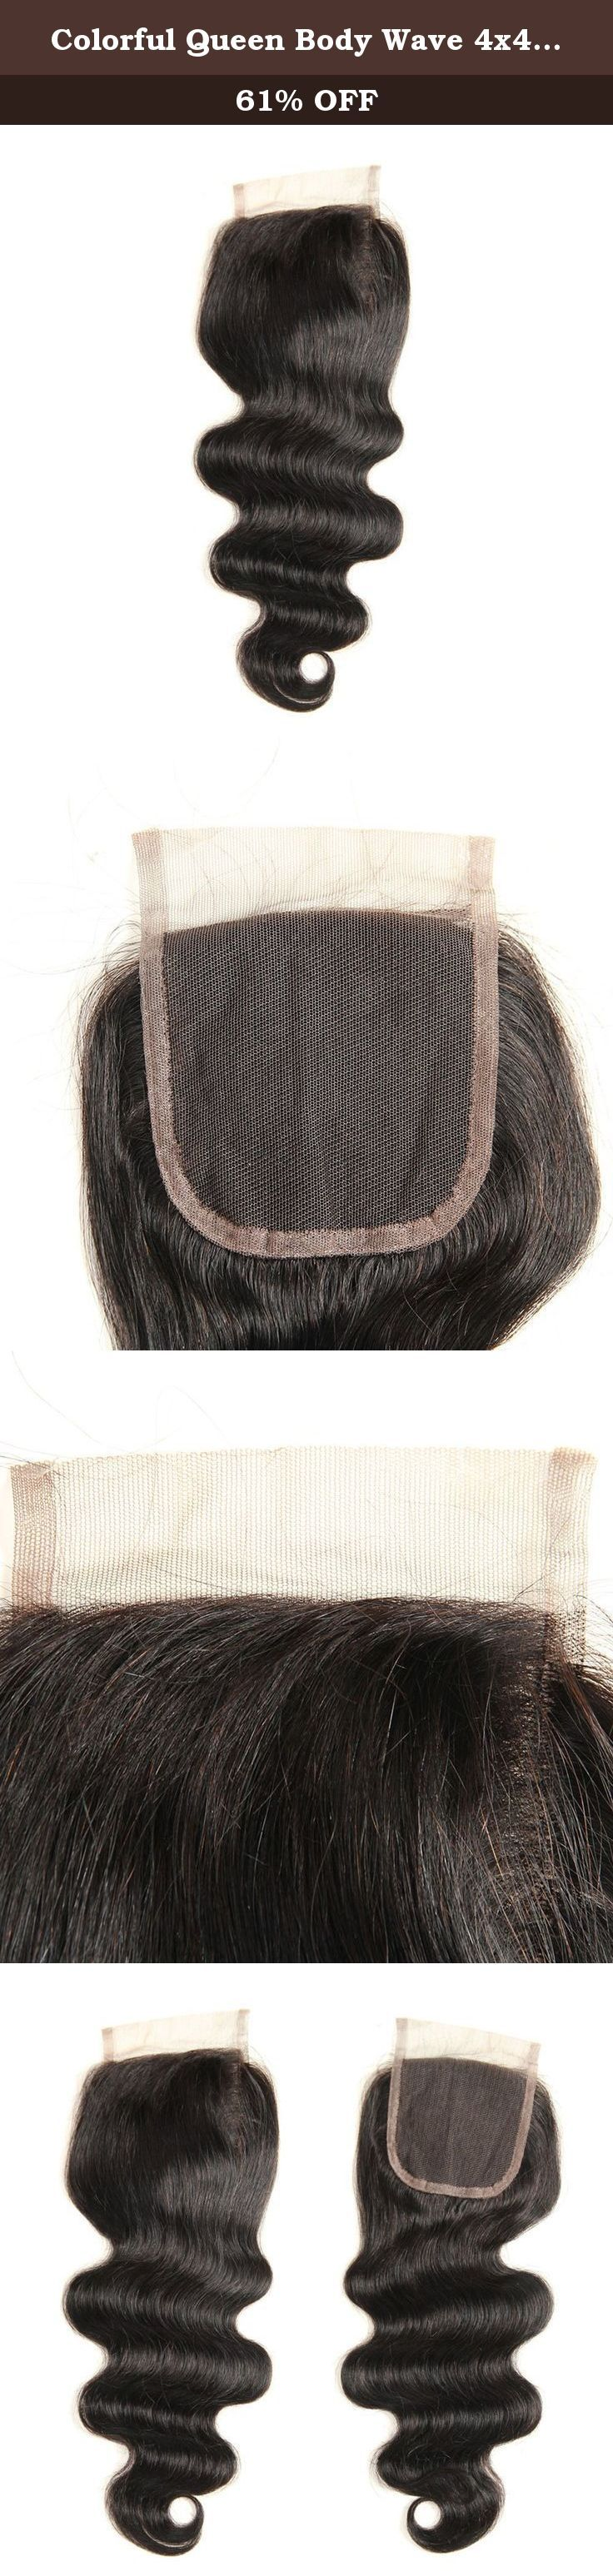 Colorful Queen Body Wave 4x4 Free Part Lace Closure with Baby Hair Natural Black Brazilian Virgin Human Hair Closures No Bleached Knots (12 inch). Item Type: 4*4 Lace Closure Texture: Body Wave Color: Natural Color Material: Grade 7a 100% Brazilian Human Hair Lace Size : 4*4 Lace Material : Swiss Lace Baby Hair : Yes Description: (1) 100% Virgin Hair (2)Flat Iron, Wash and Dry, Curl Avaliable (3)No Shedding,Tangle Free,Full Cuticle Quantity: 1 Piece Why choose us: (1) Direct factory...